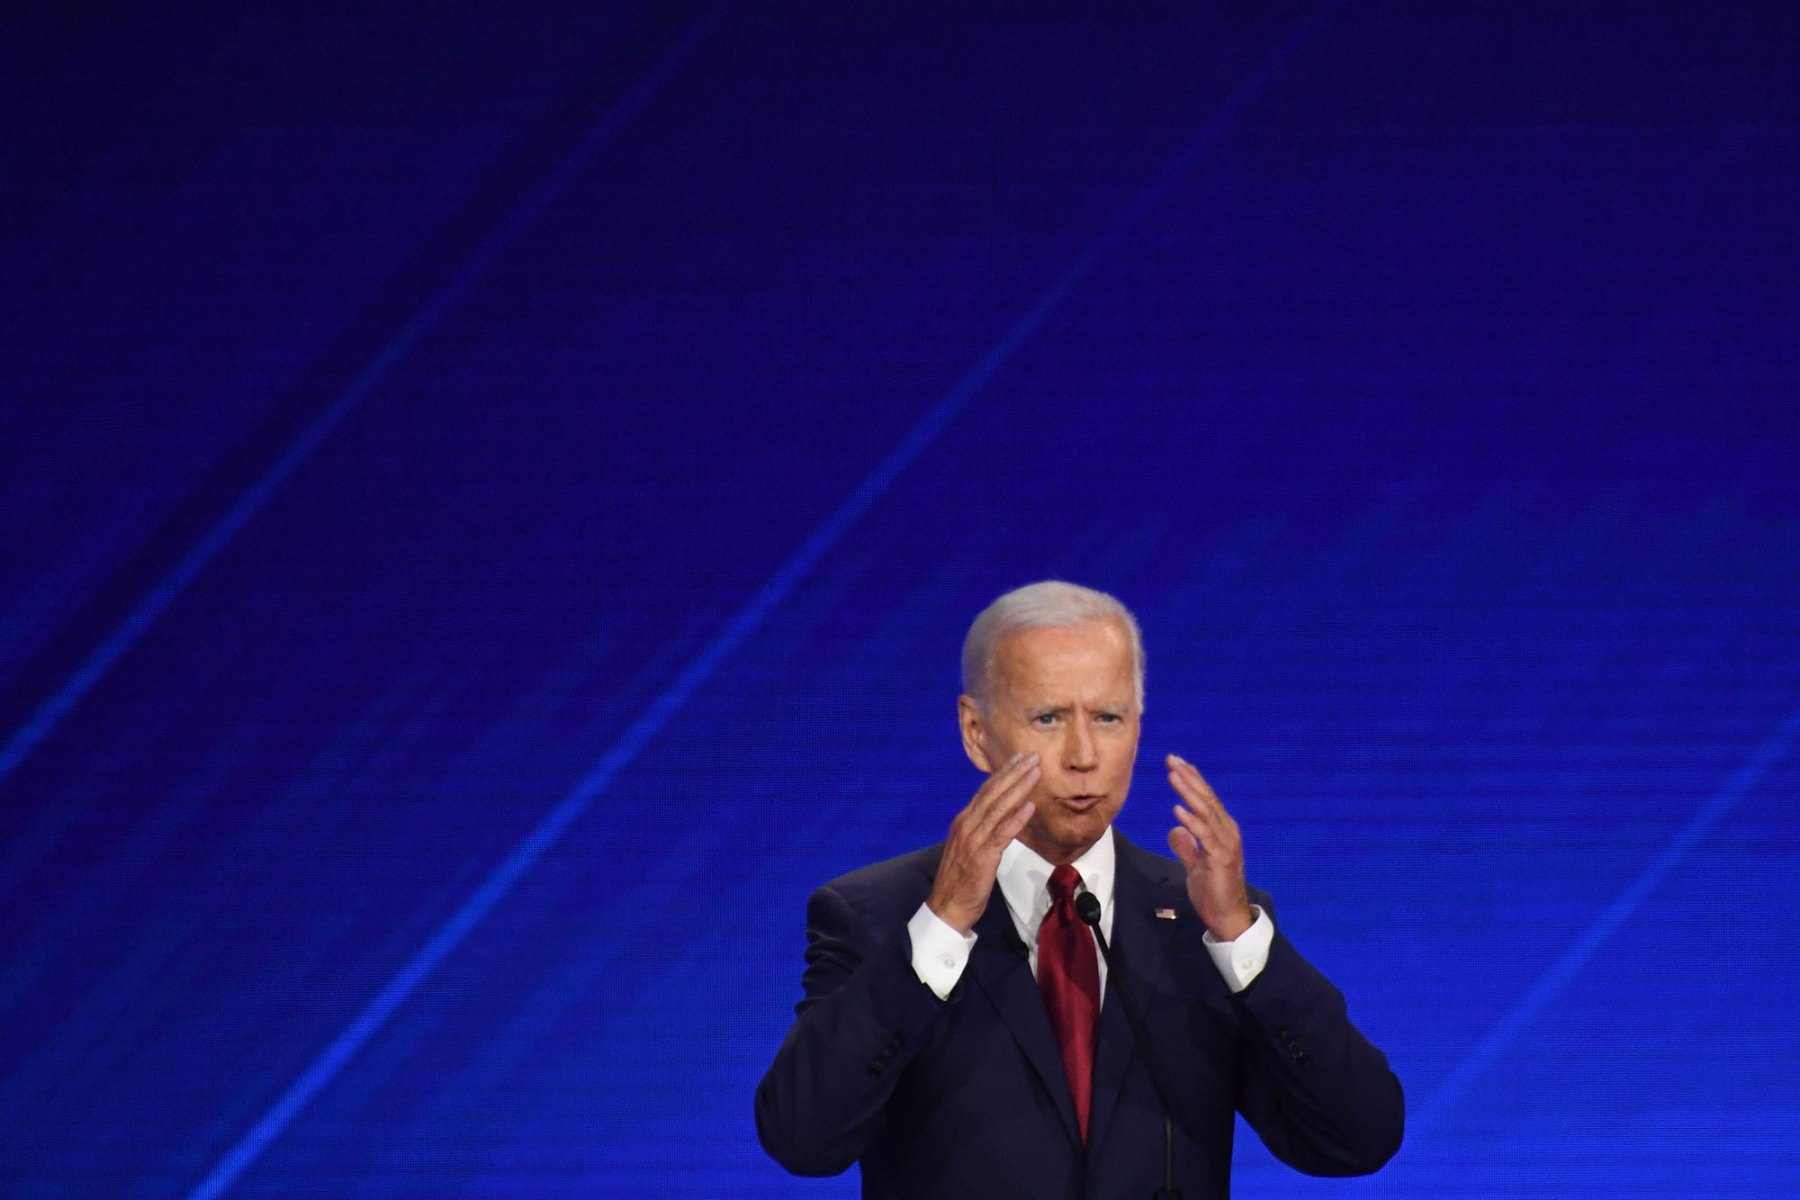 Democratic presidential hopeful former Vice President Joe Biden speaks during the third Democratic primary debate of the 2020 presidential campaign season hosted by ABC News in partnership with Univision at Texas Southern University in Houston, Texas on September 12, 2019. (Photo by Robyn BECK / AFP)        (Photo credit should read ROBYN BECK/AFP/Getty Images)